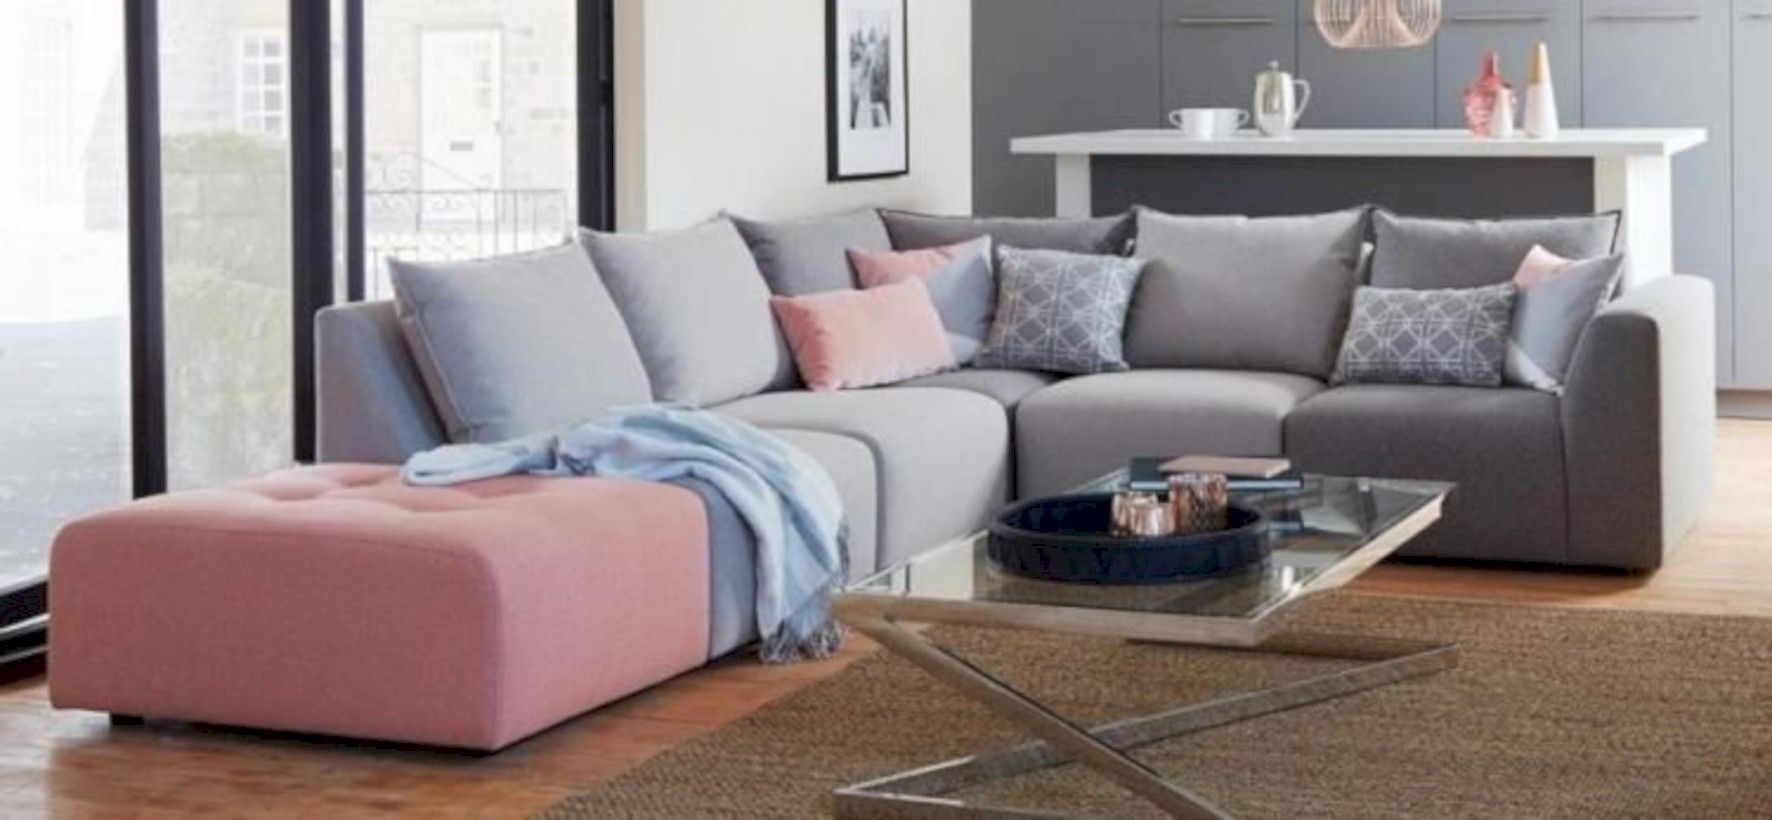 Image For Latest Cheap Sofa Set For Sale Gallery Sofa Design  # Muebles Zb Zaragoza